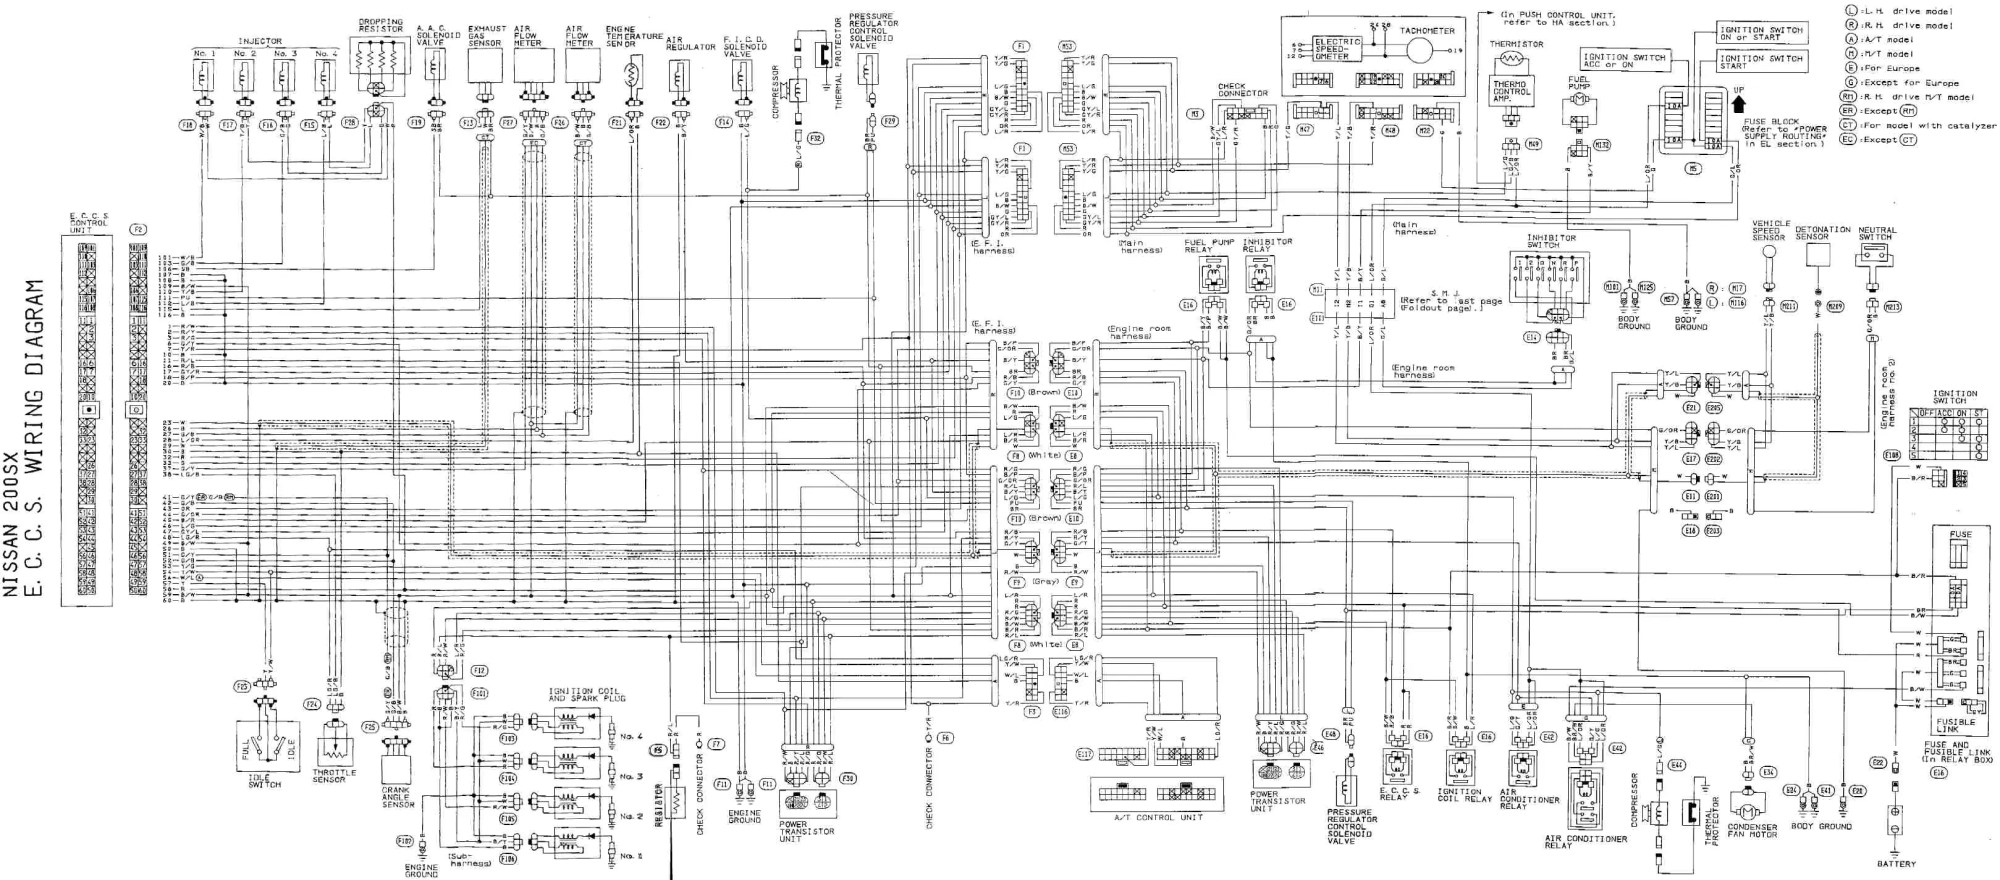 hight resolution of nissan almera engine diagram nissan wiring diagrams of nissan almera engine diagram radio wiring diagram nissan